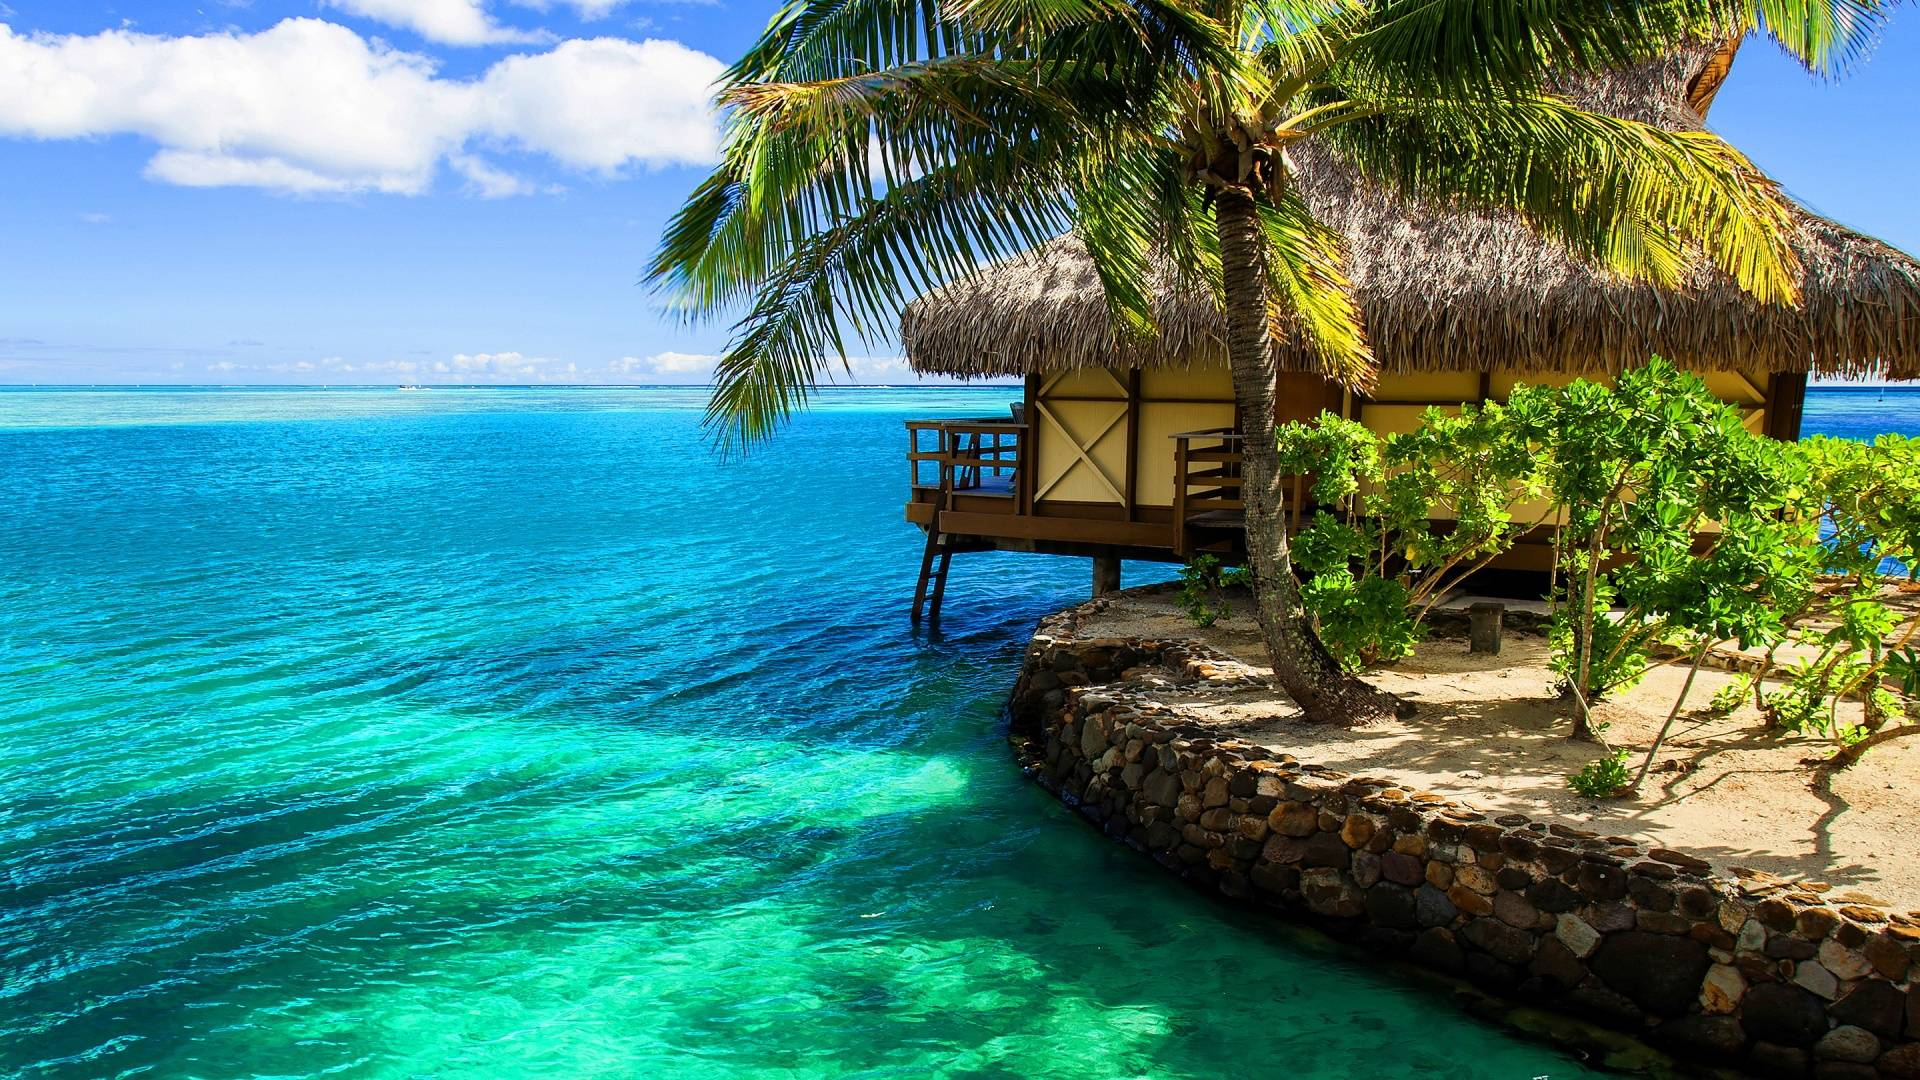 Bungalow wallpapers wallpaper cave for Beach wallpaper 1920x1080